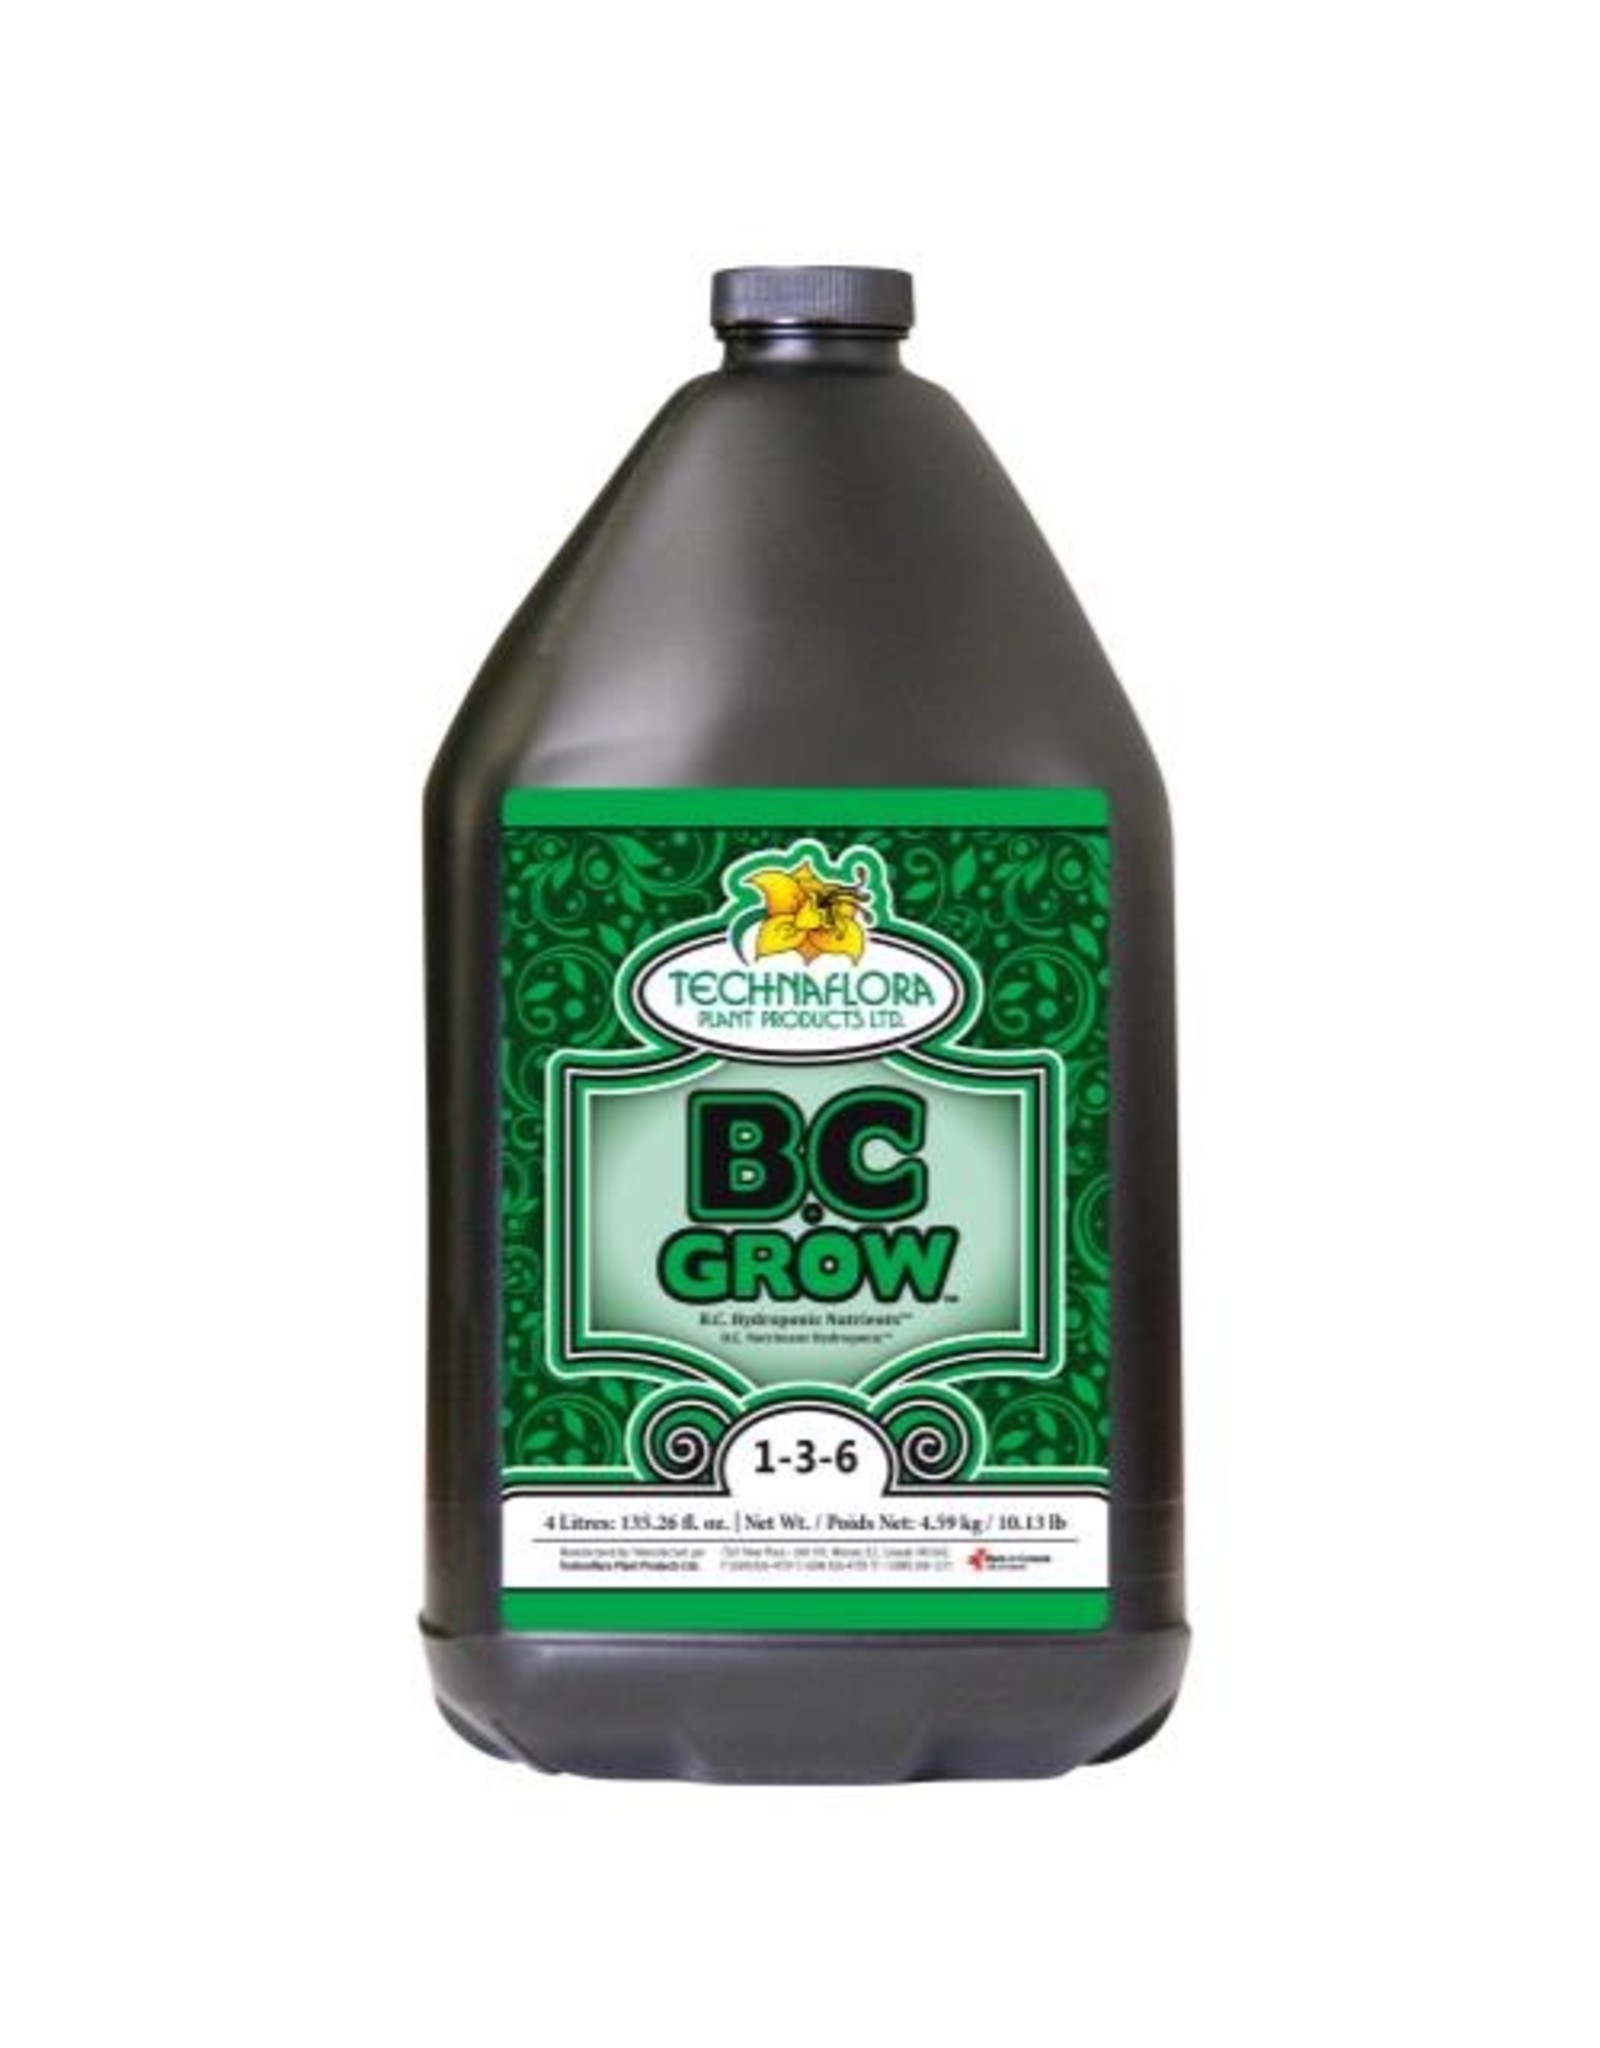 Technaflora Technaflora BC Grow - 4L